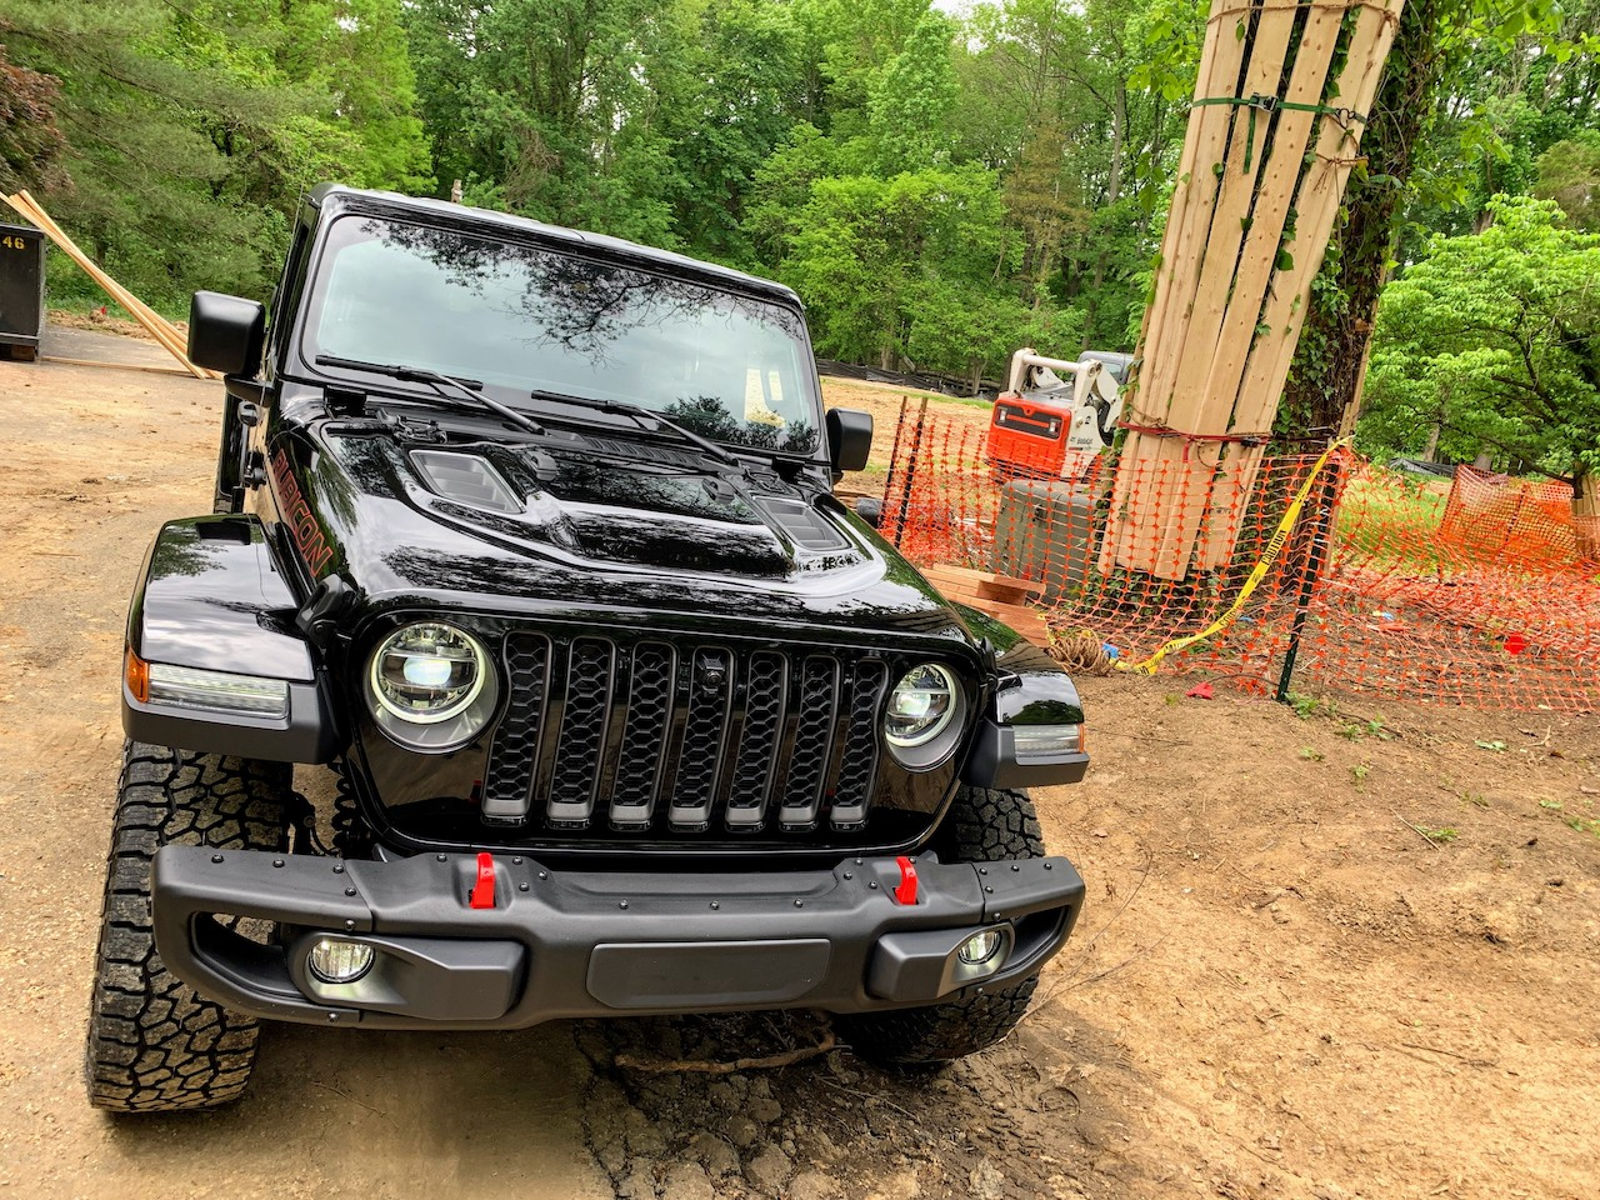 2020 Jeep Gladiator Rubicon, looking right at home